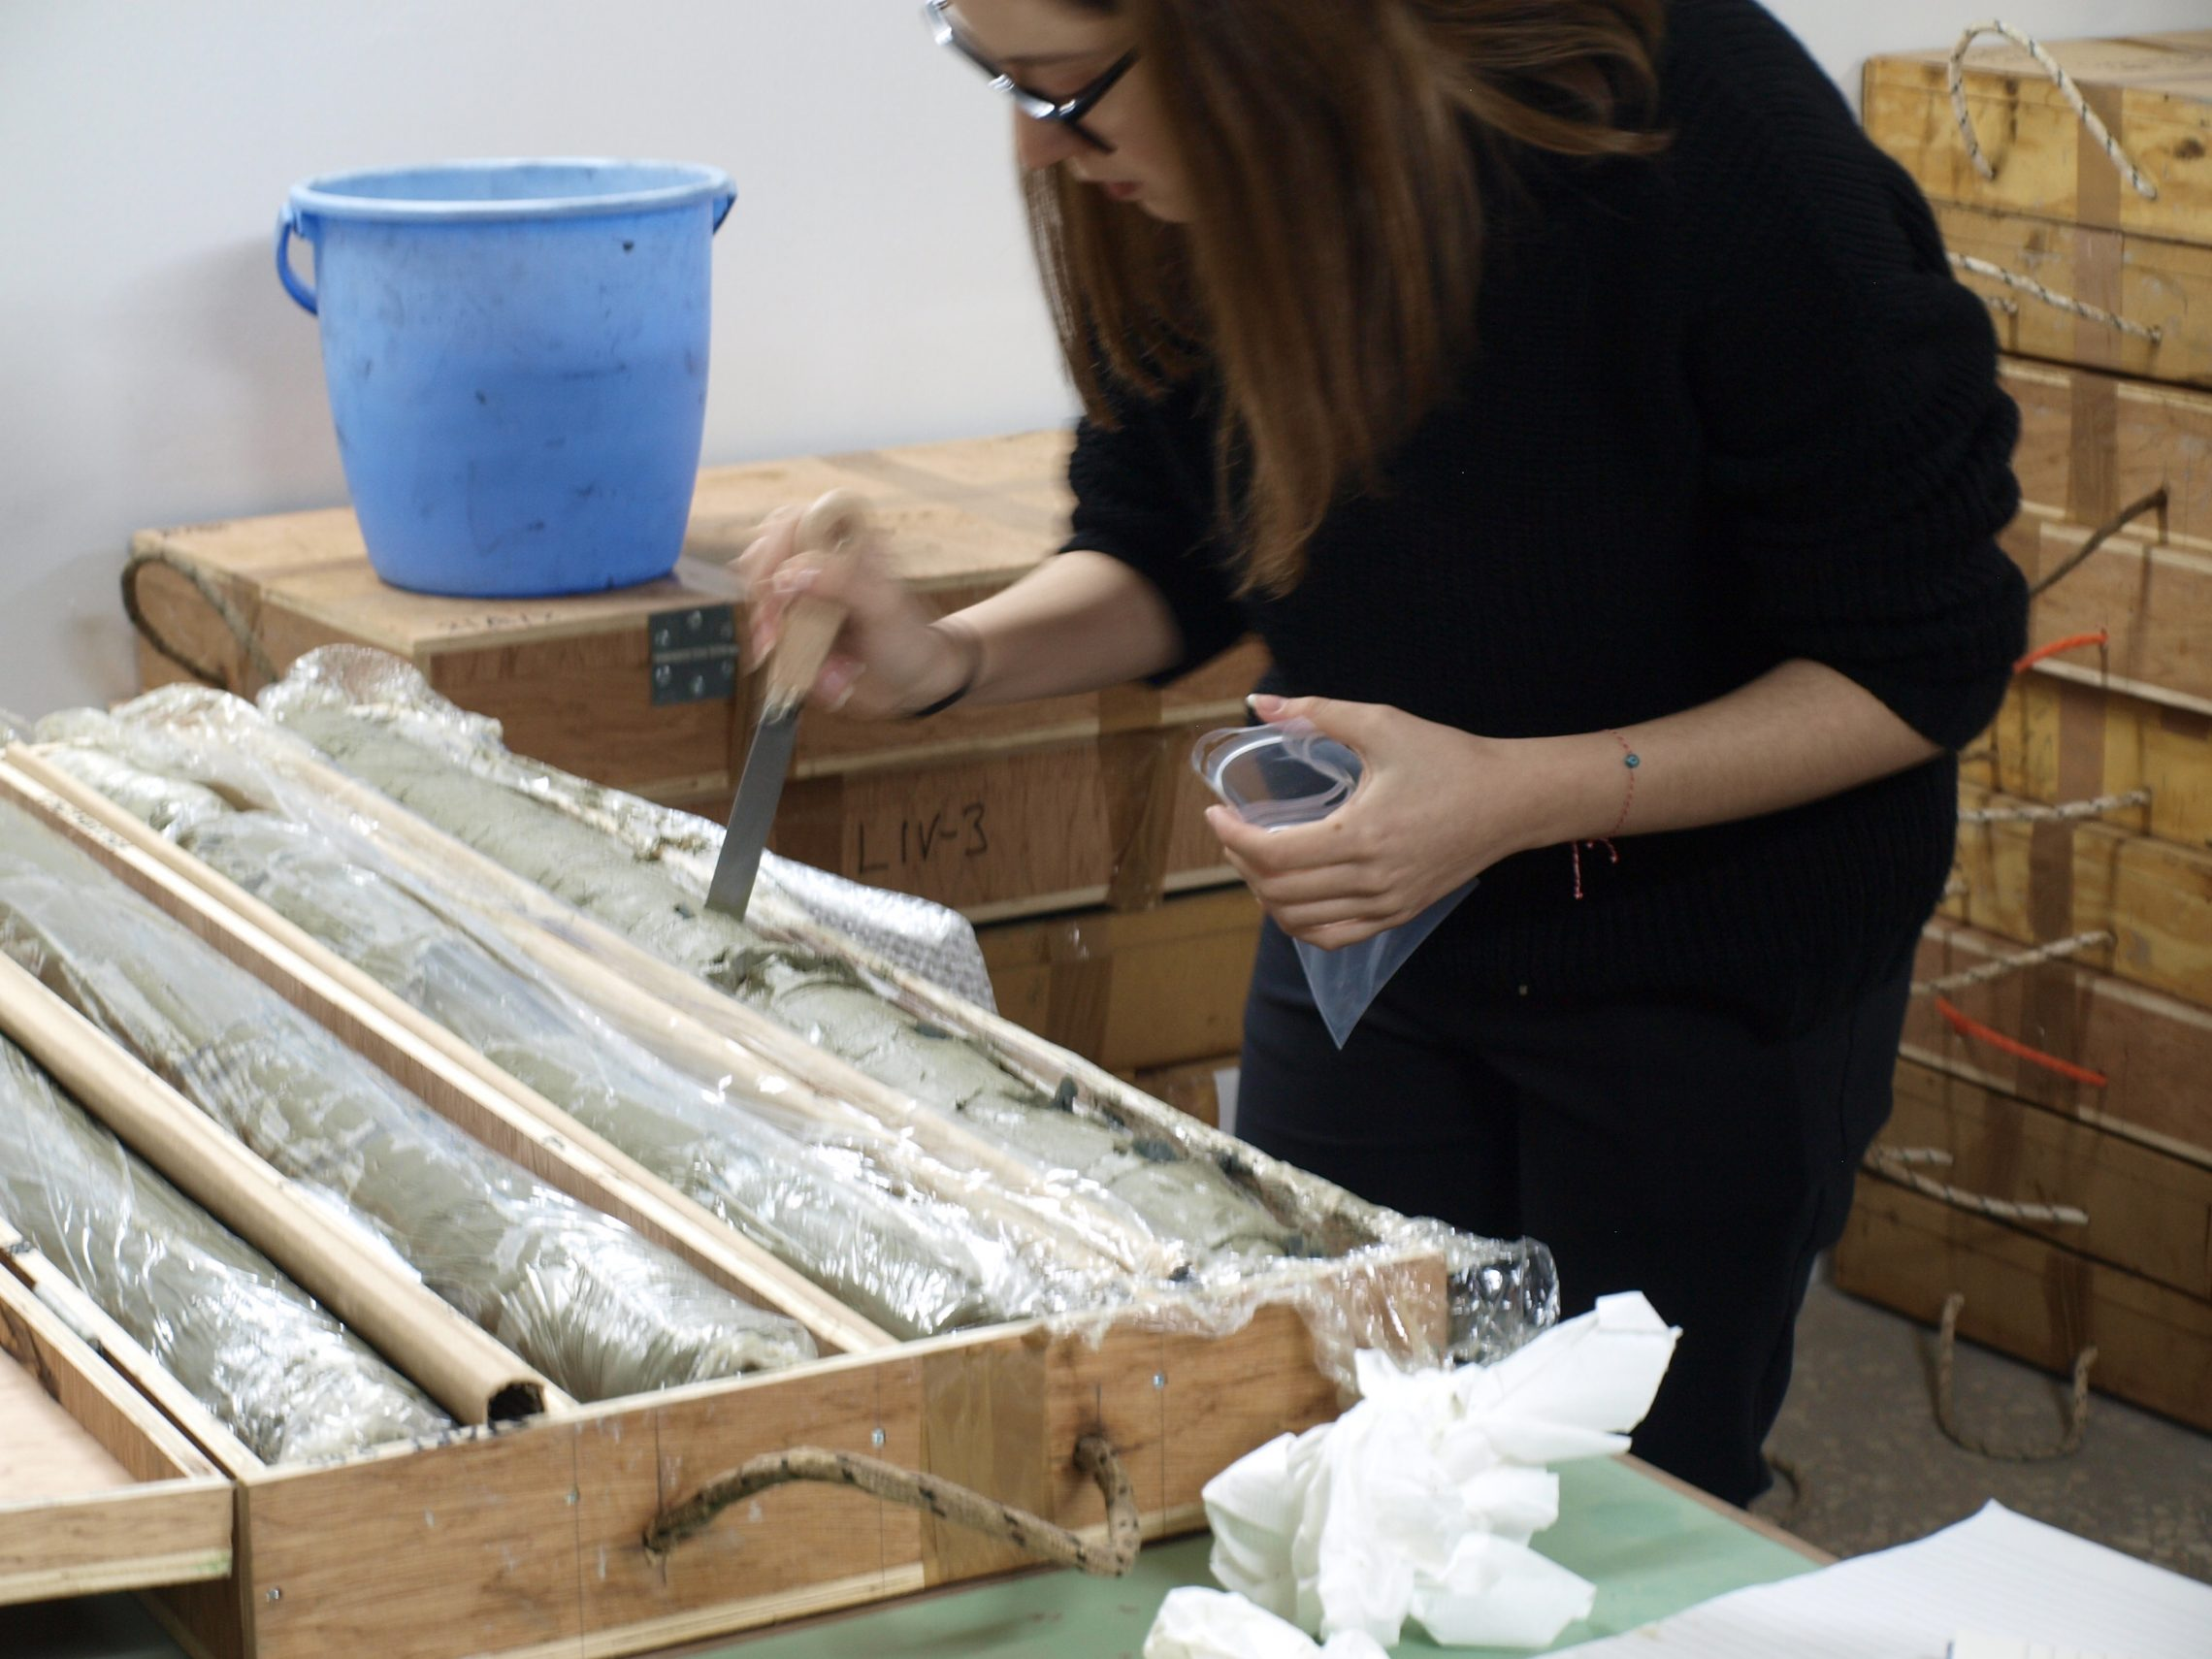 Sampling the marine cores